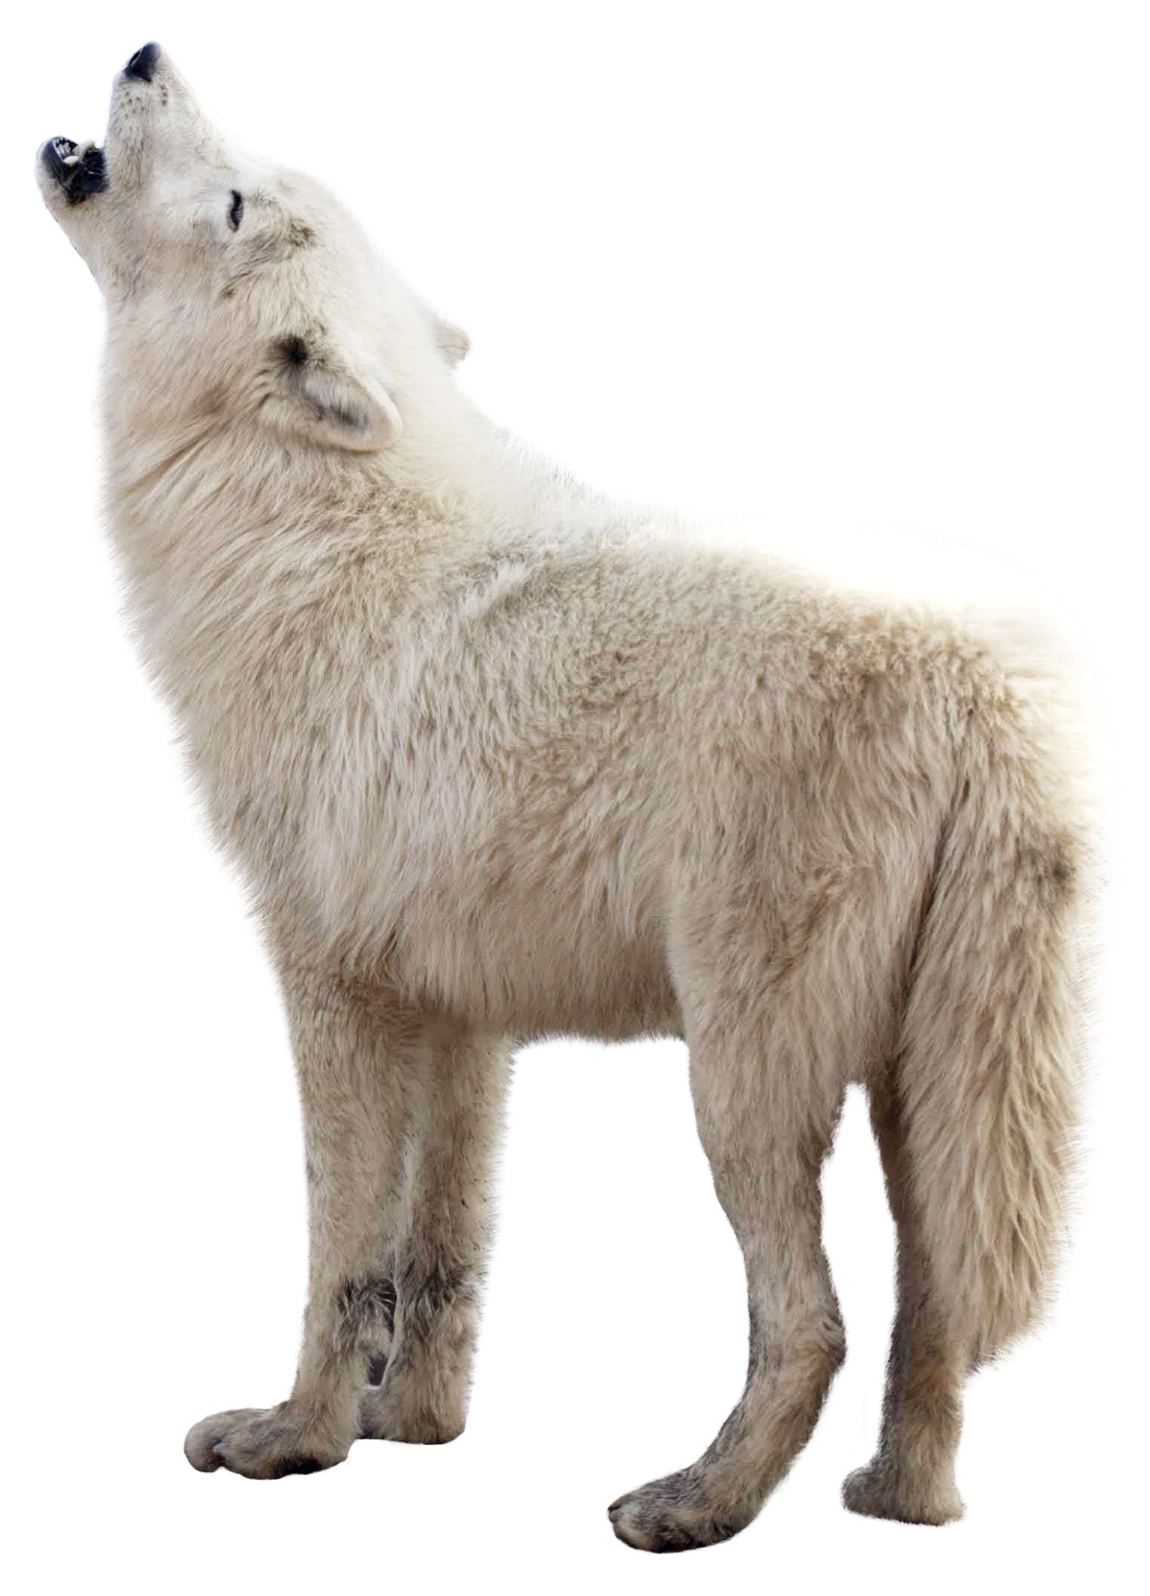 Wolf clipart transparent background. Png image purepng free